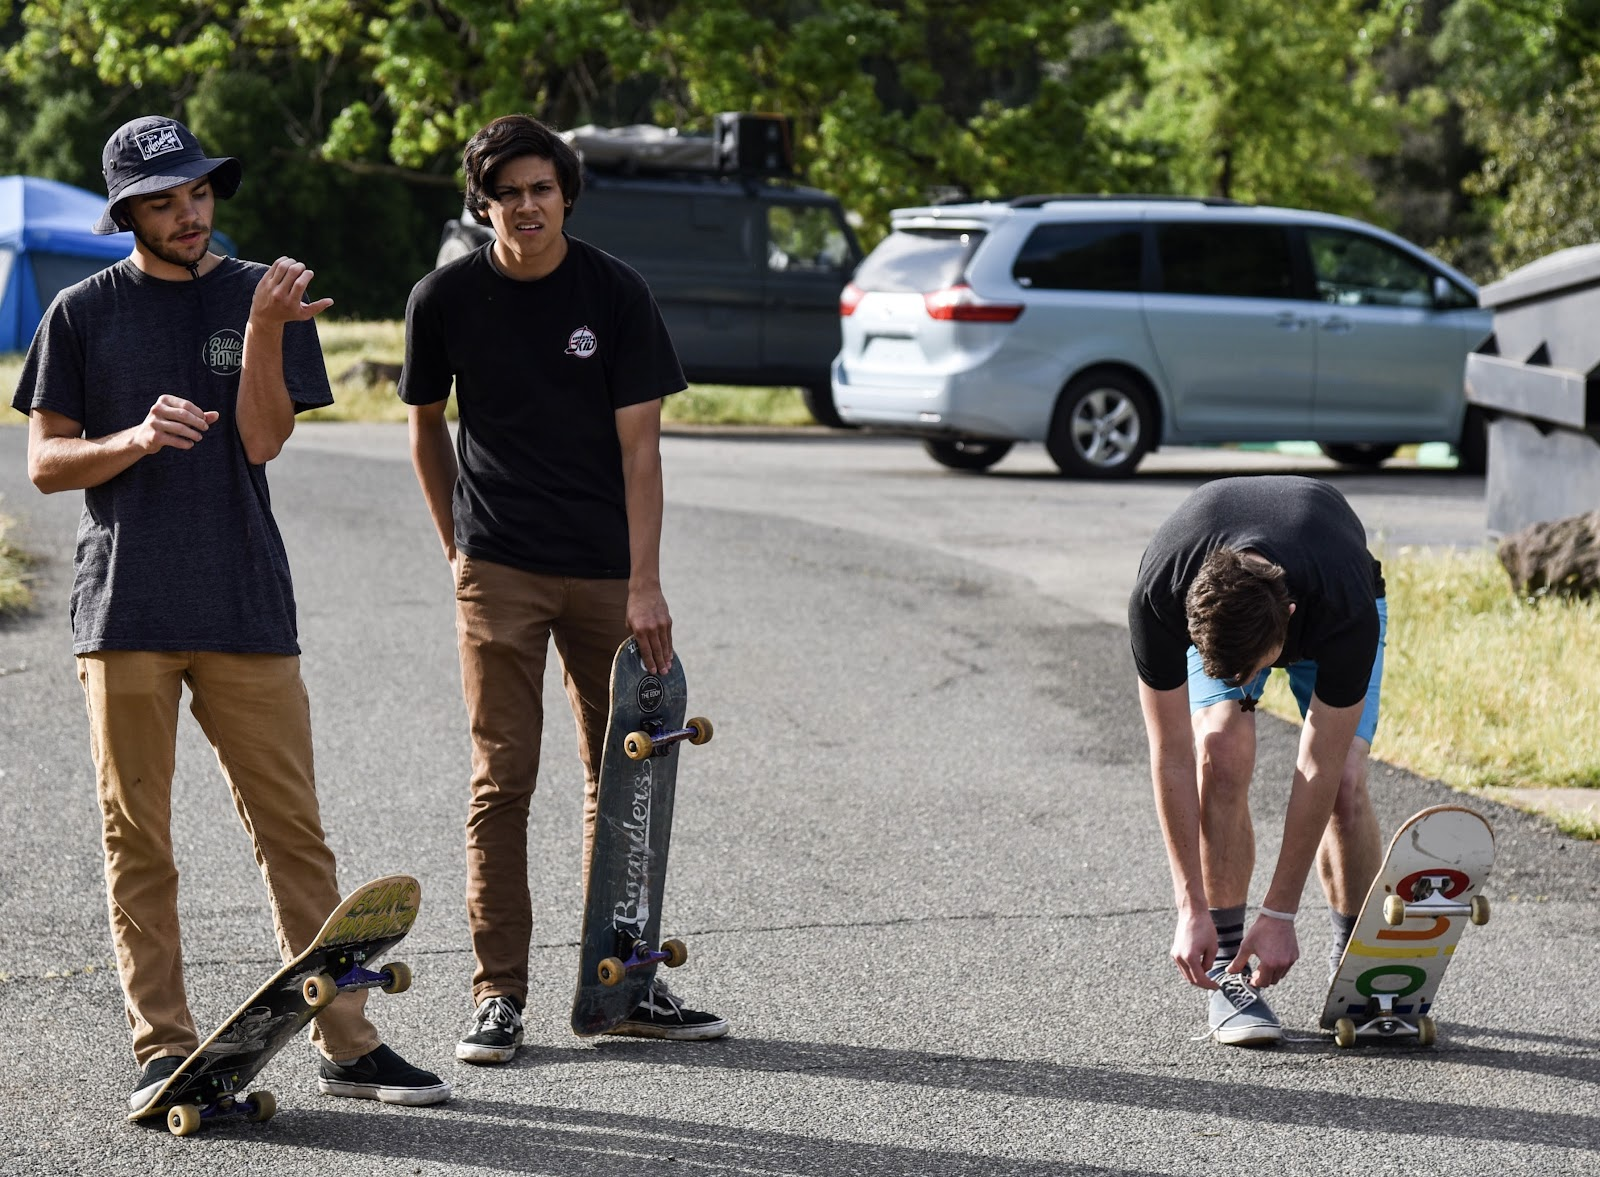 Friends skateboarding around